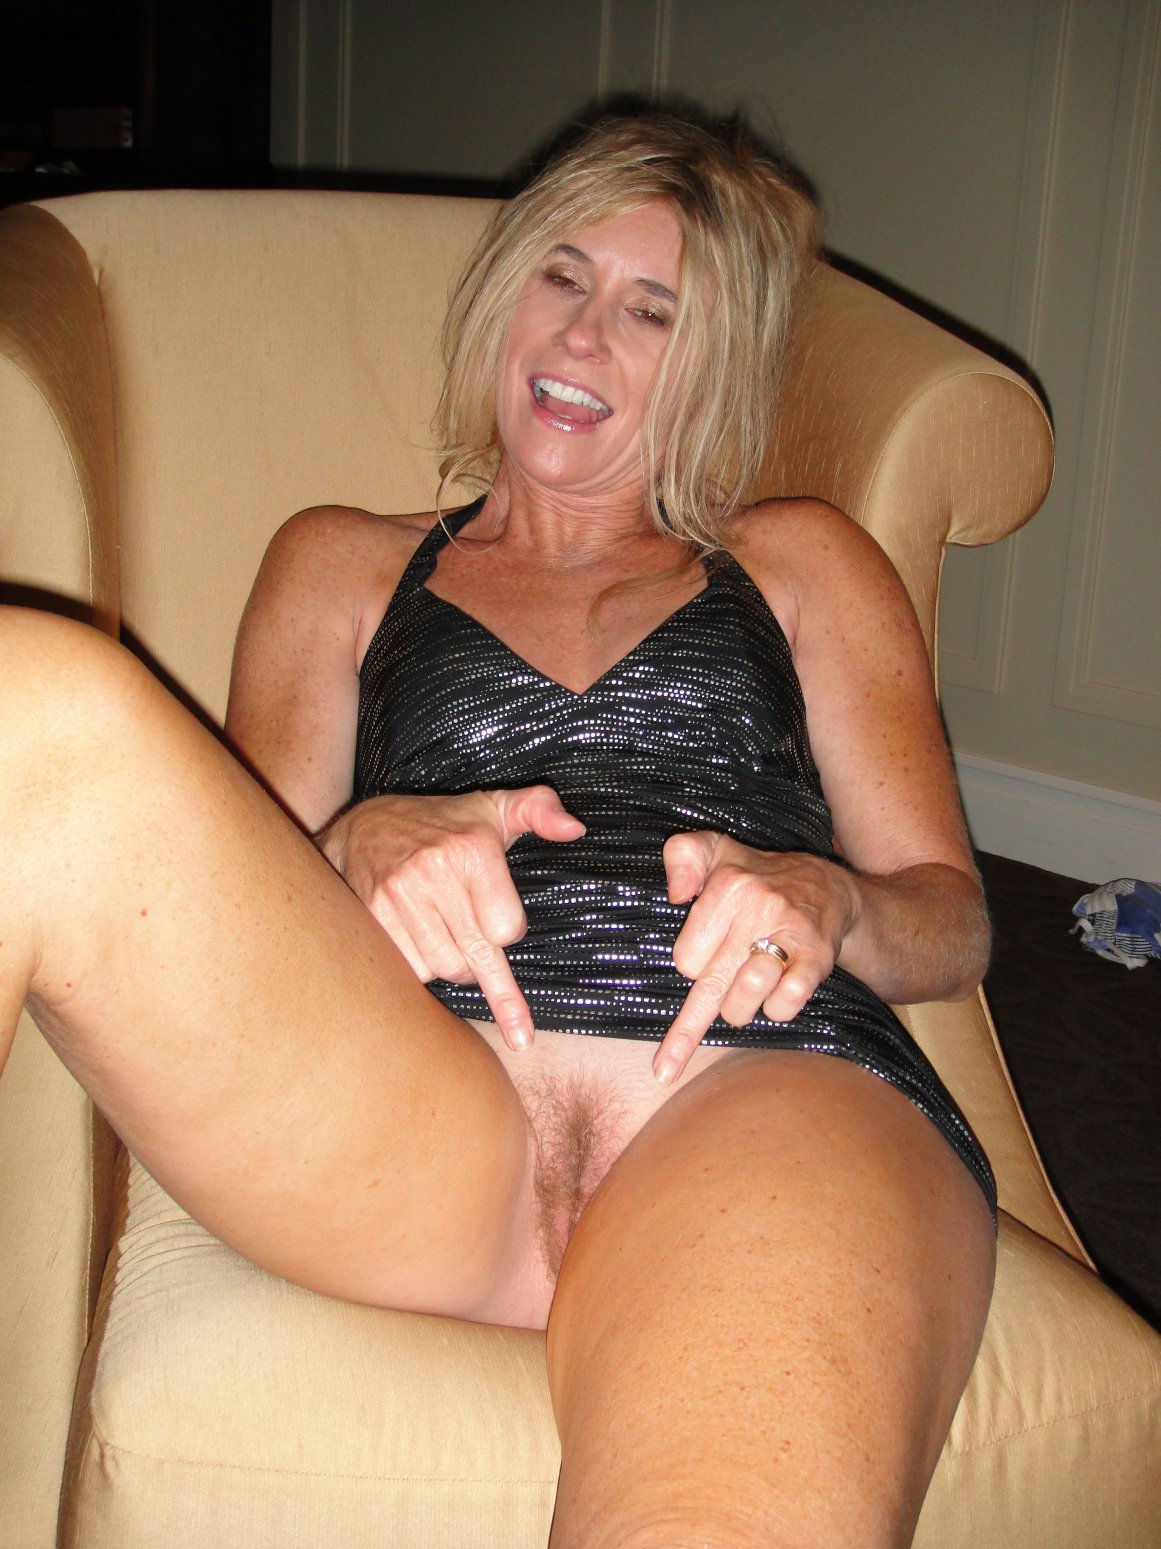 Old slut wife pictures